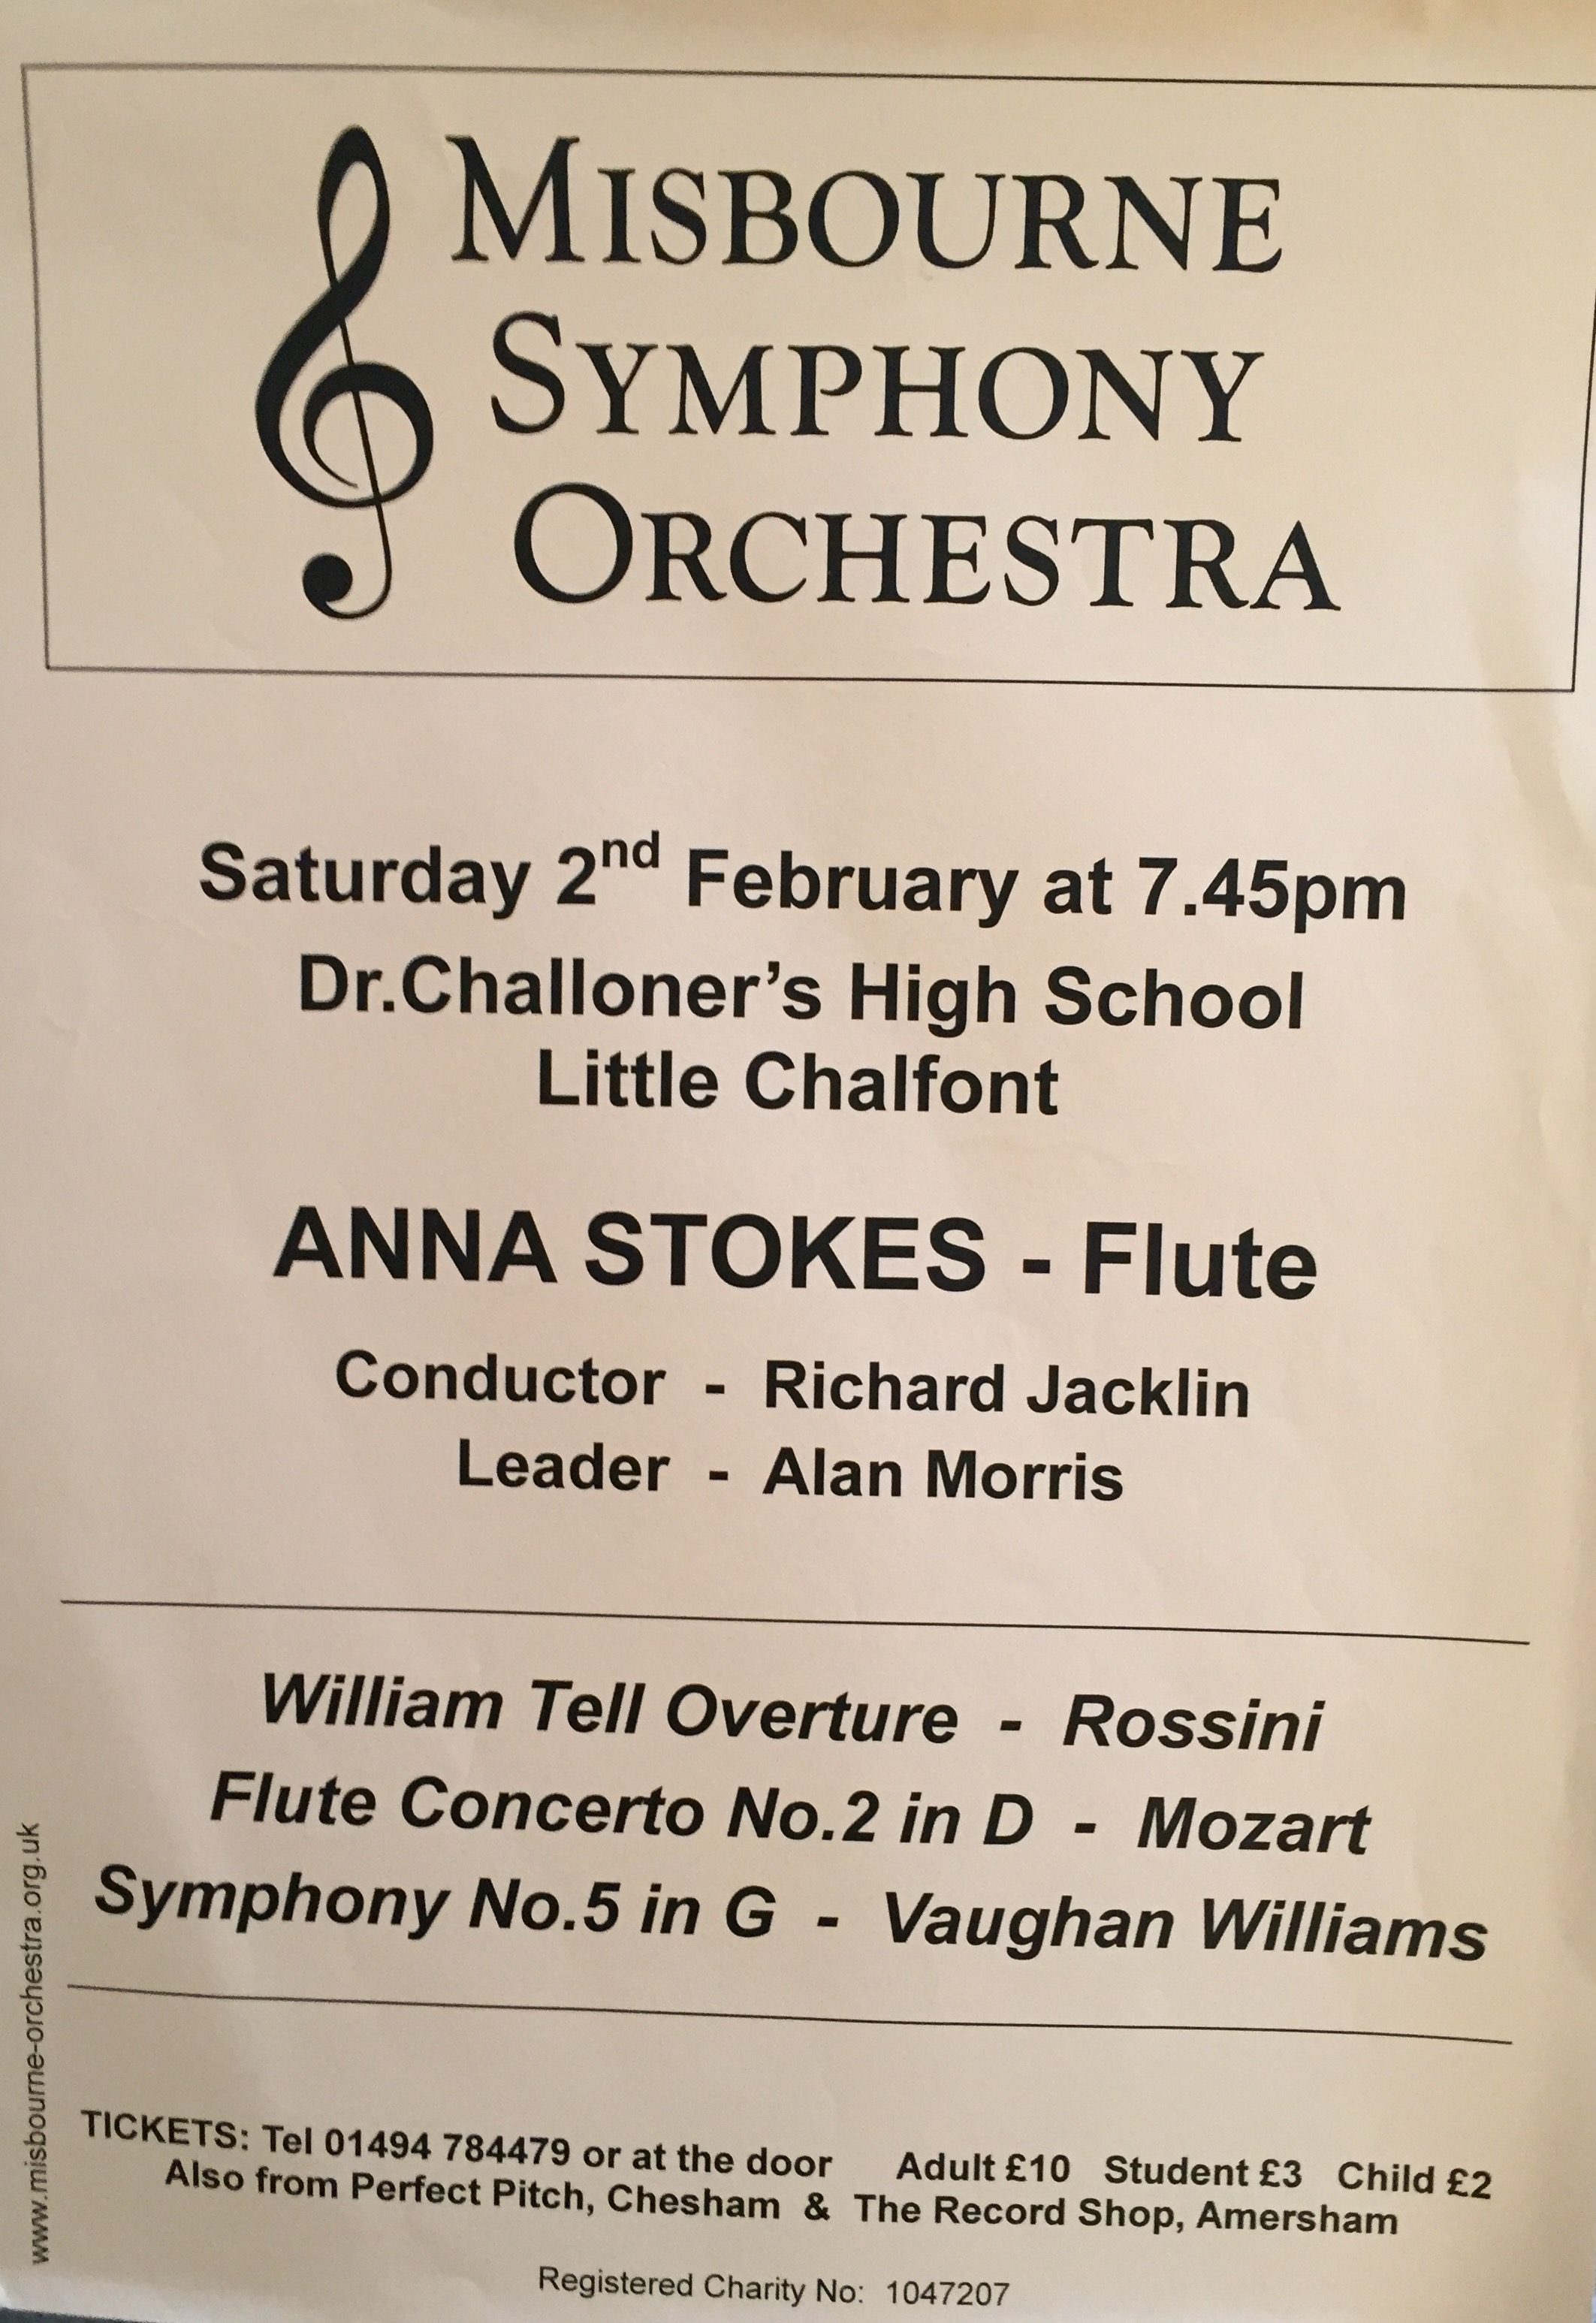 Anna Stokes-Flute Soloist-Mozart Concerto in D-Misbourne Symphony Orchestra